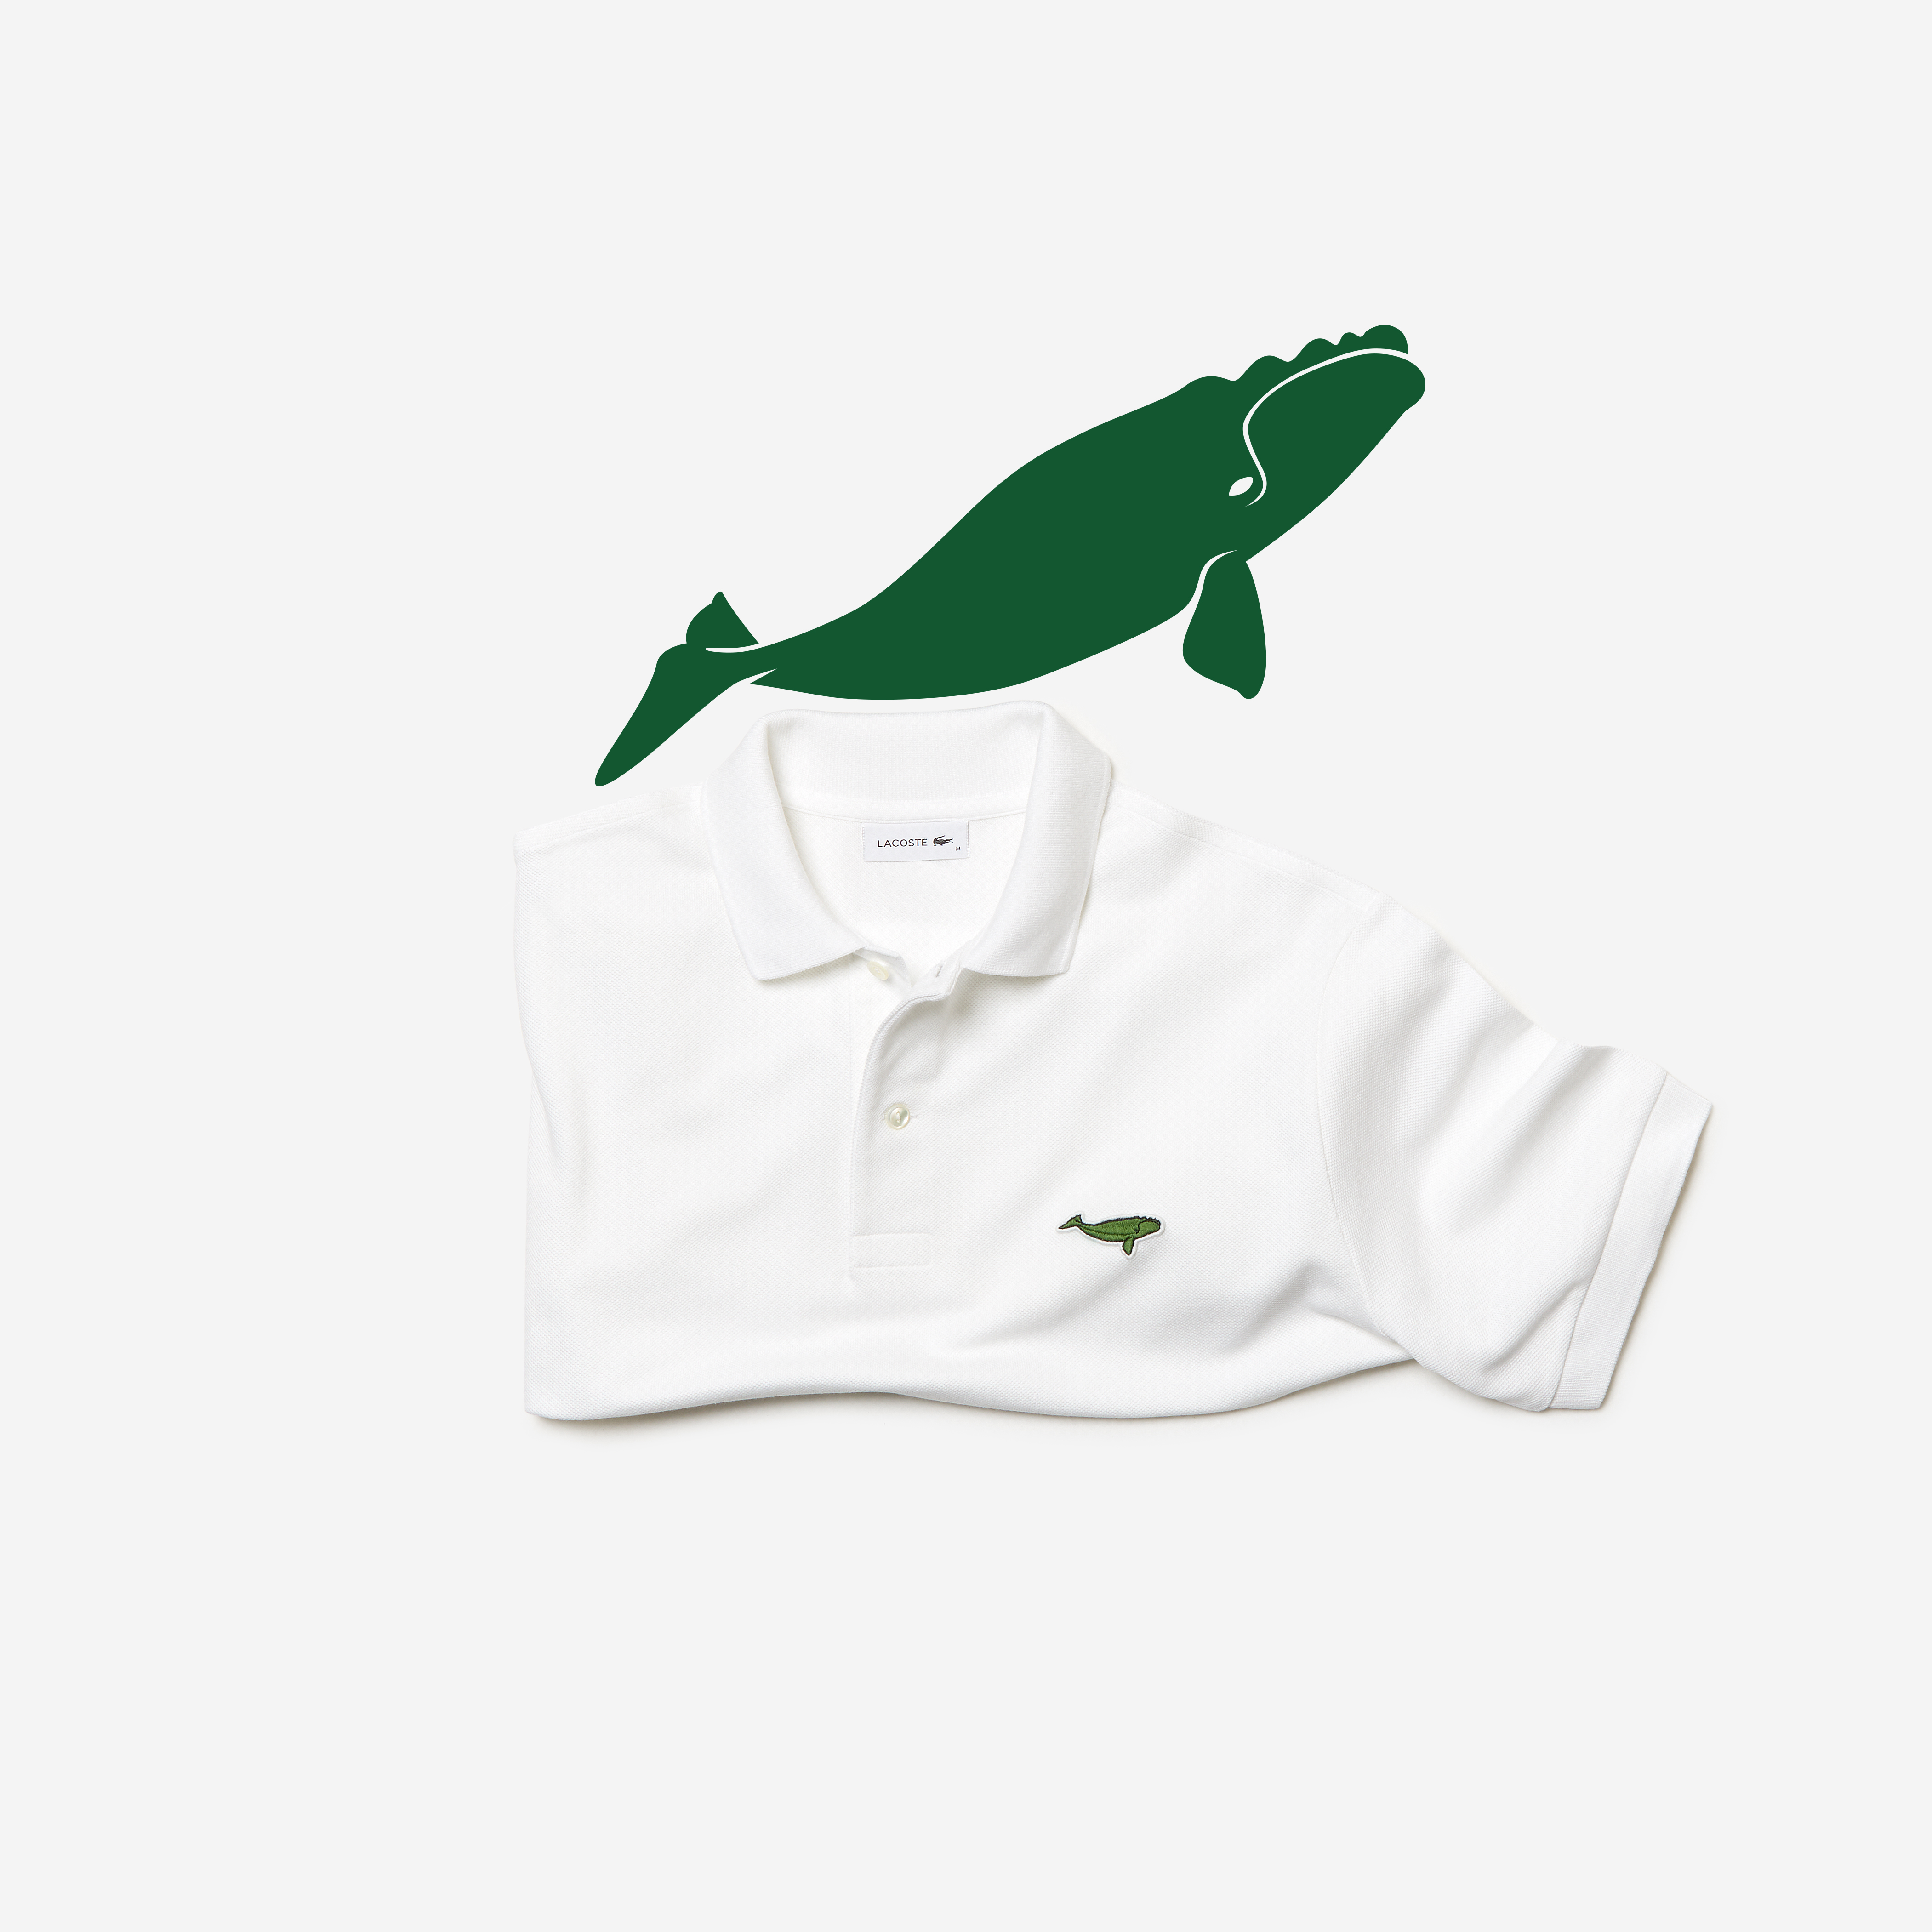 lacoste-x-save-our-pieces-north-atlantic-right-whale-packshot-polo_0116-1